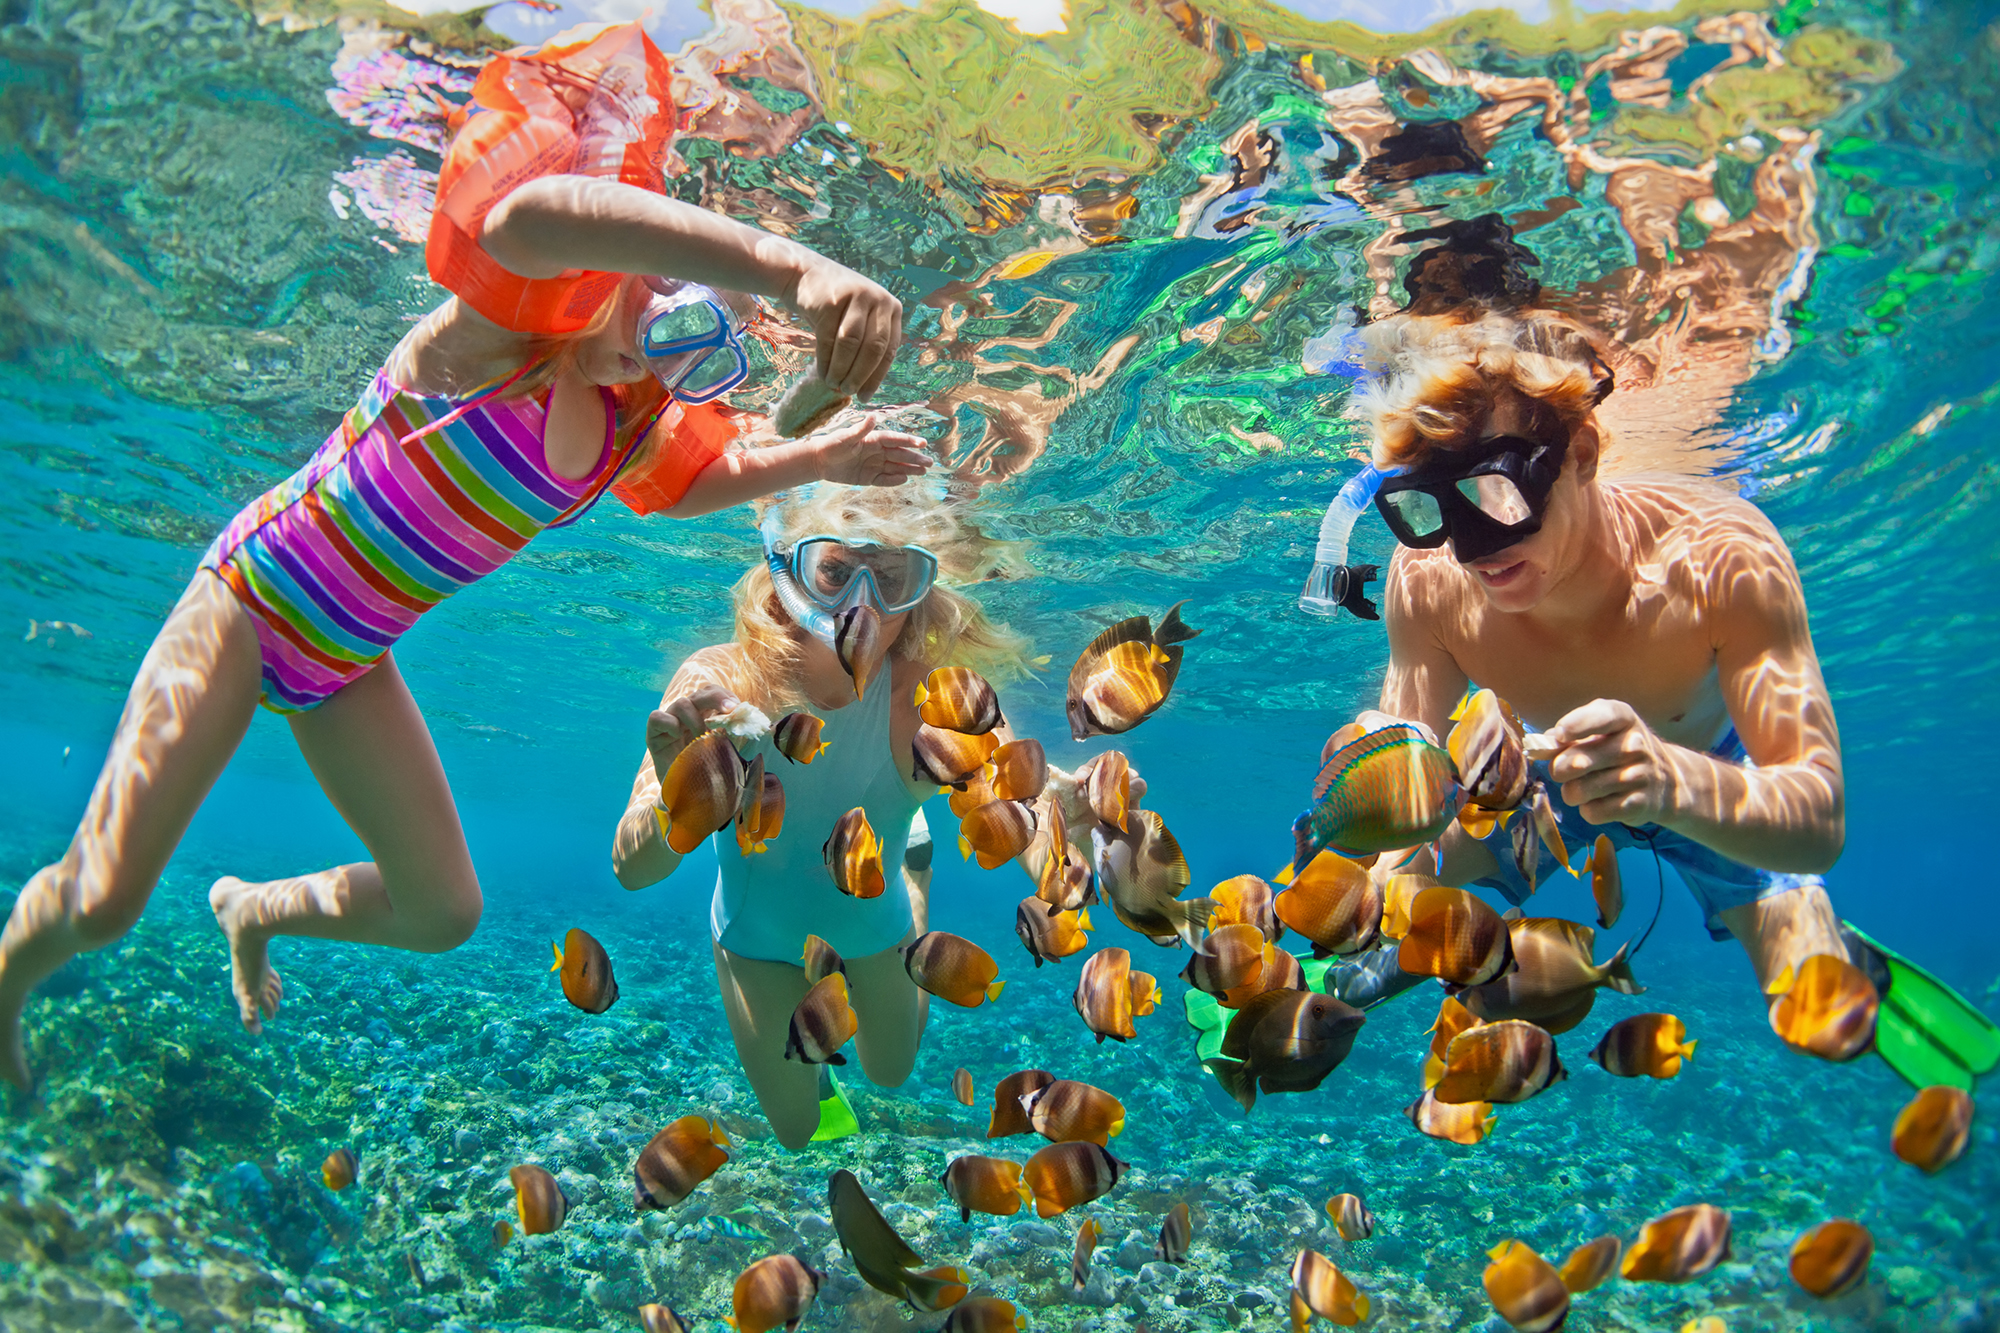 Family snorkeling in the Florida Keys